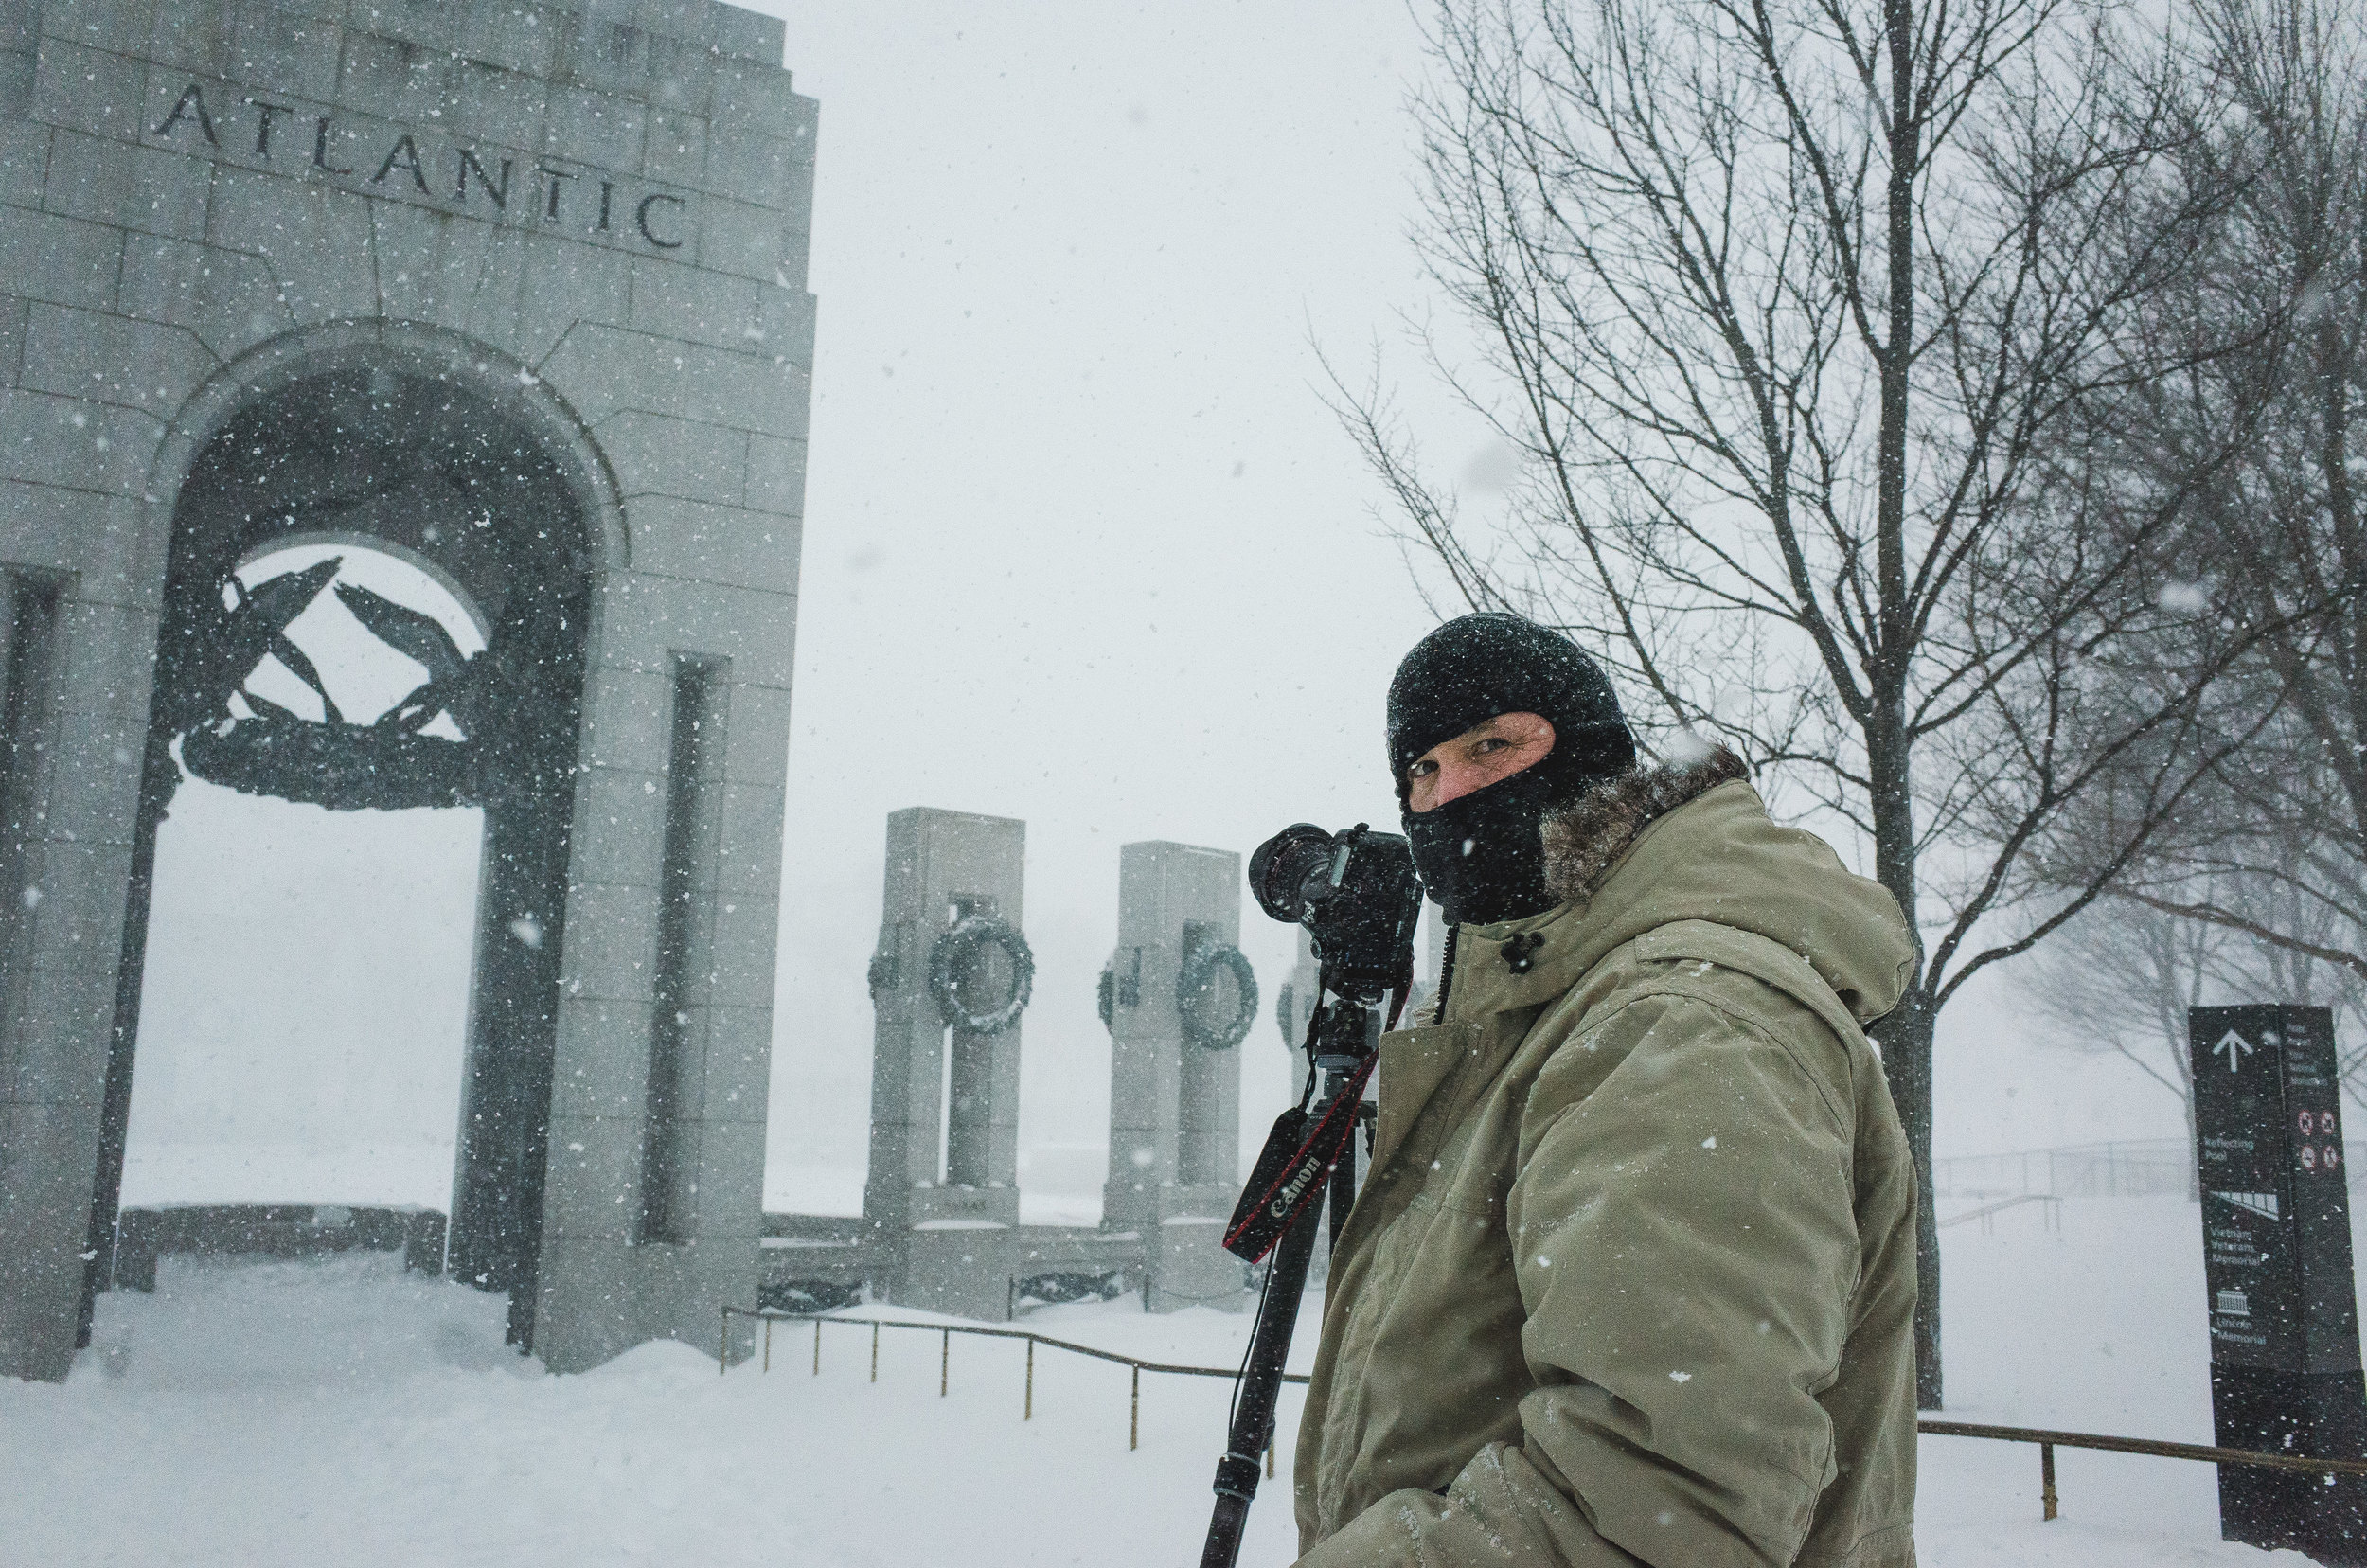 Blizzard Jonas Washington DC 2016 Photographer Mantas Kubilinskas-16.jpg